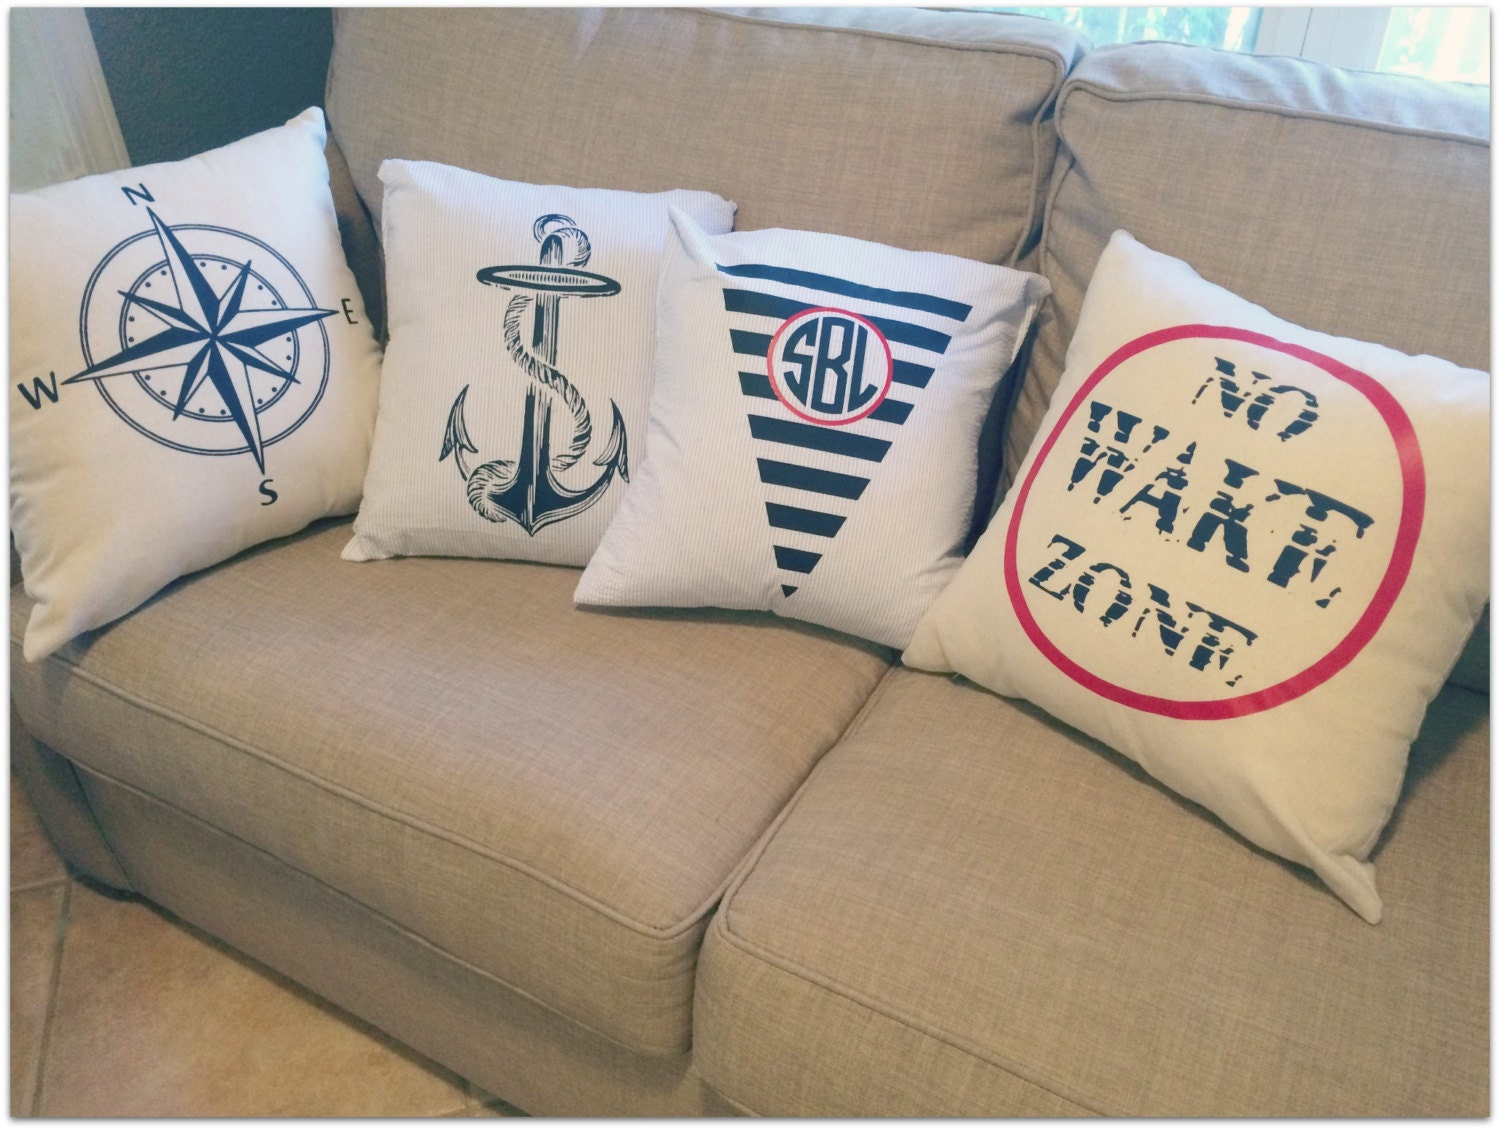 Throw Pillow Covers Nautical : SALE Nautical or Monogrammed Throw Pillow Covers